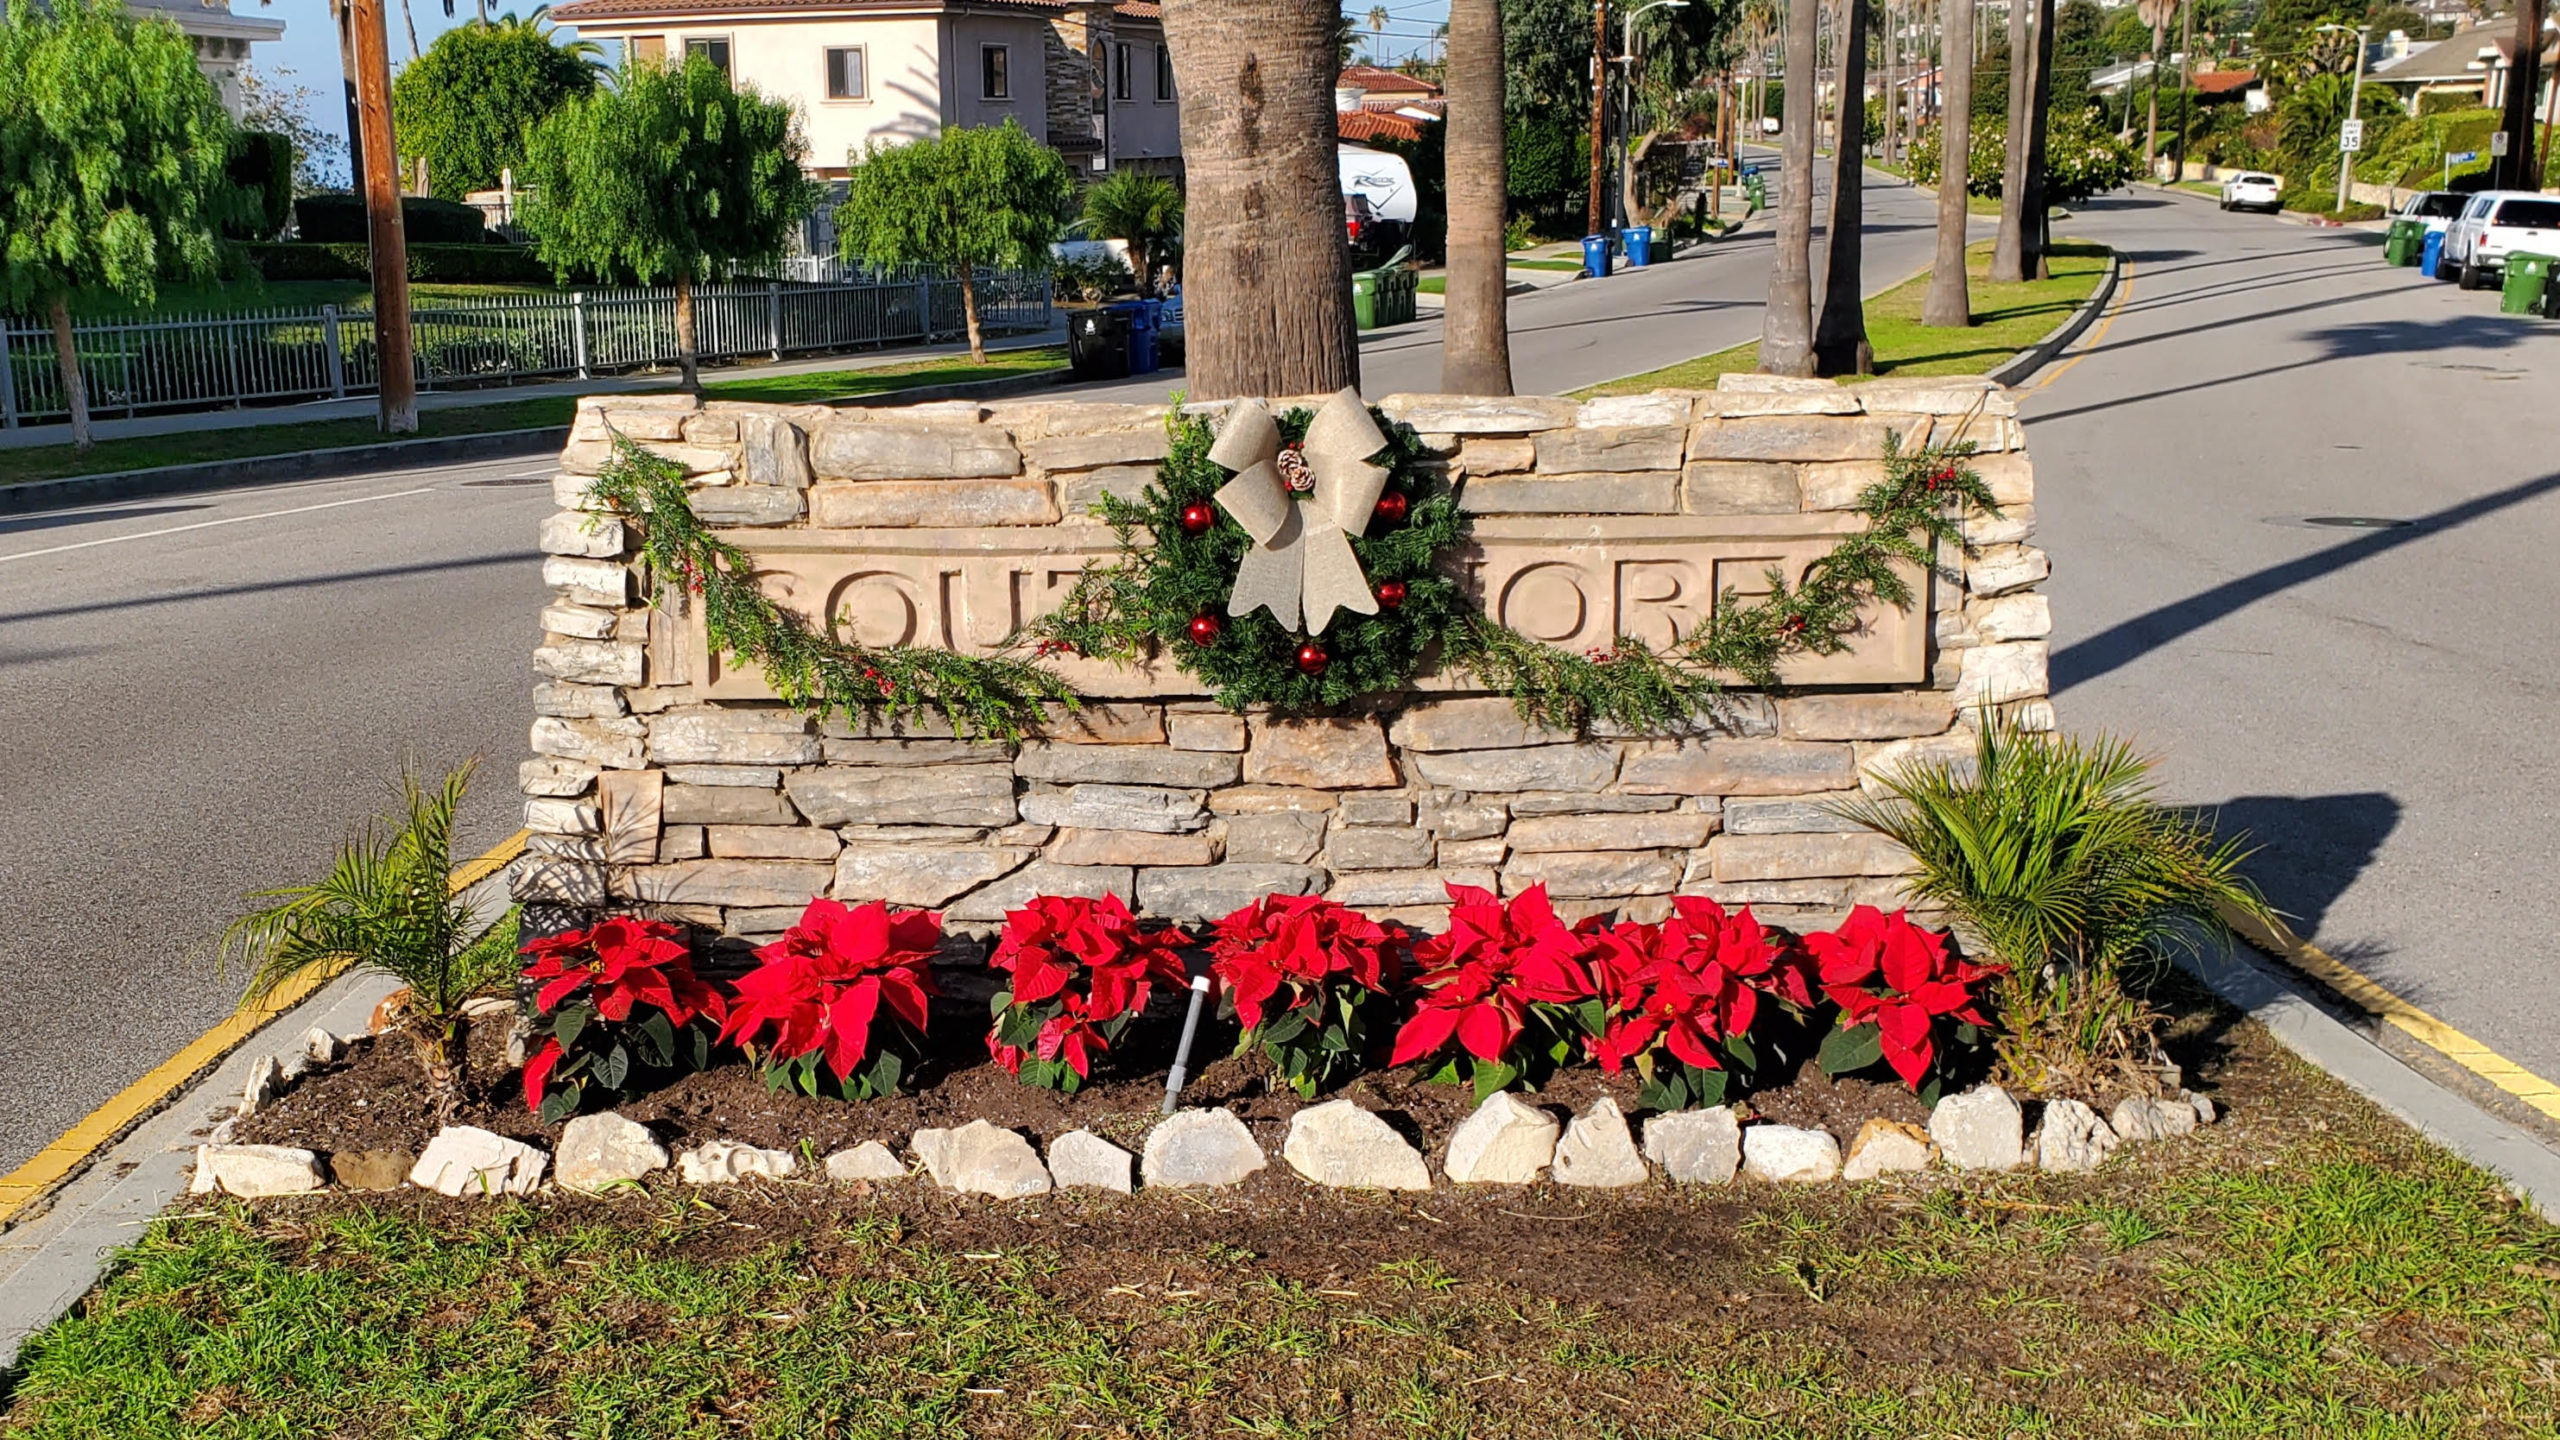 South Shores sign decorated for the holidays